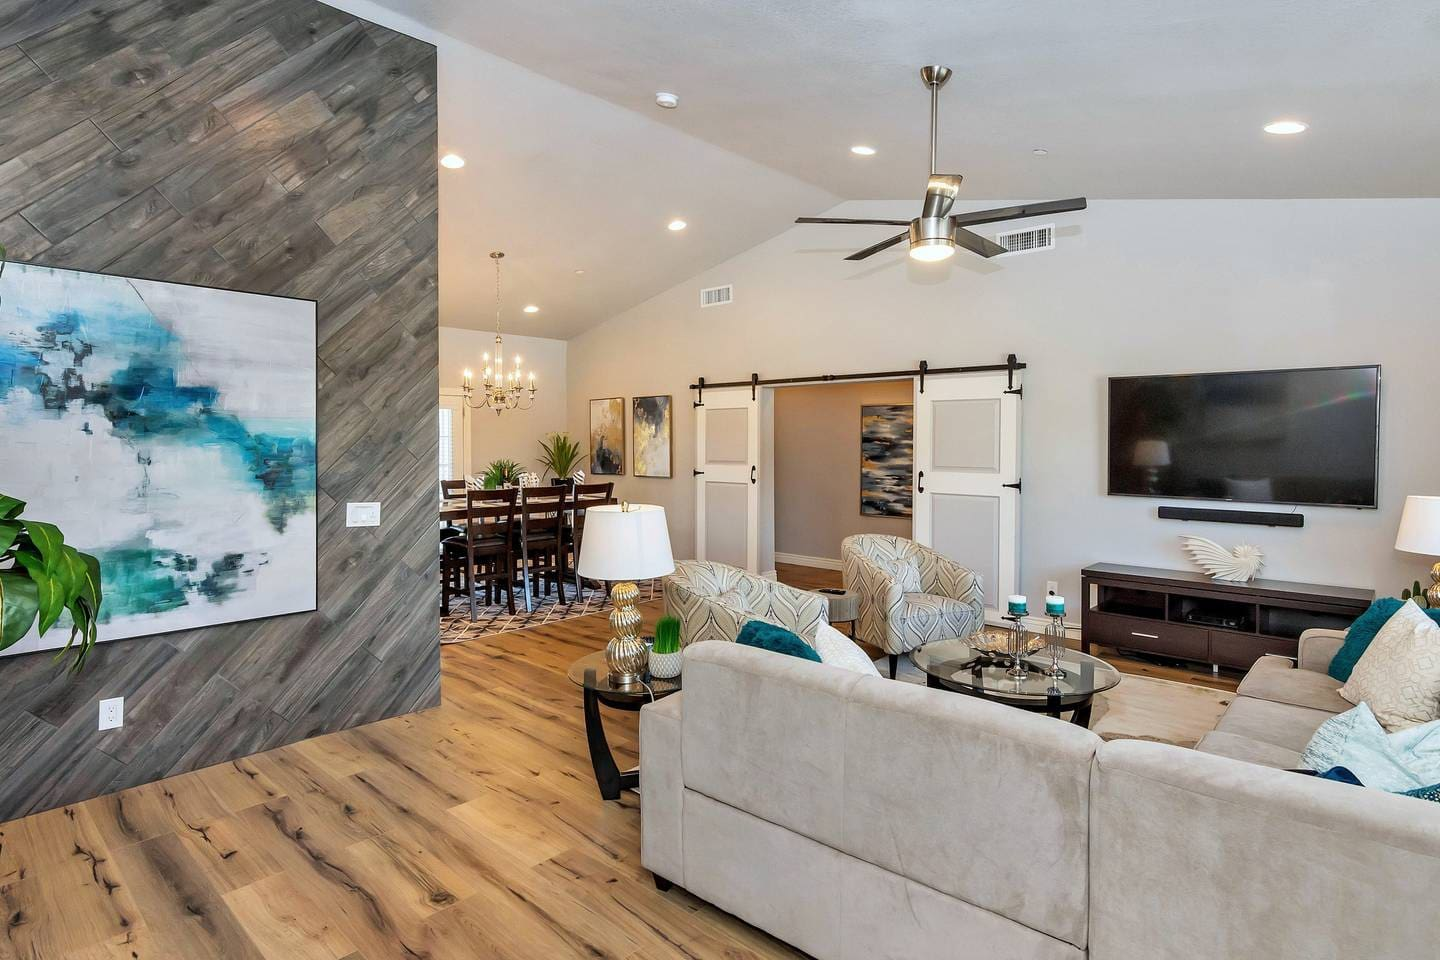 Relax in our big house near Old Town Scottsdale with our open kitchen/living room layout.